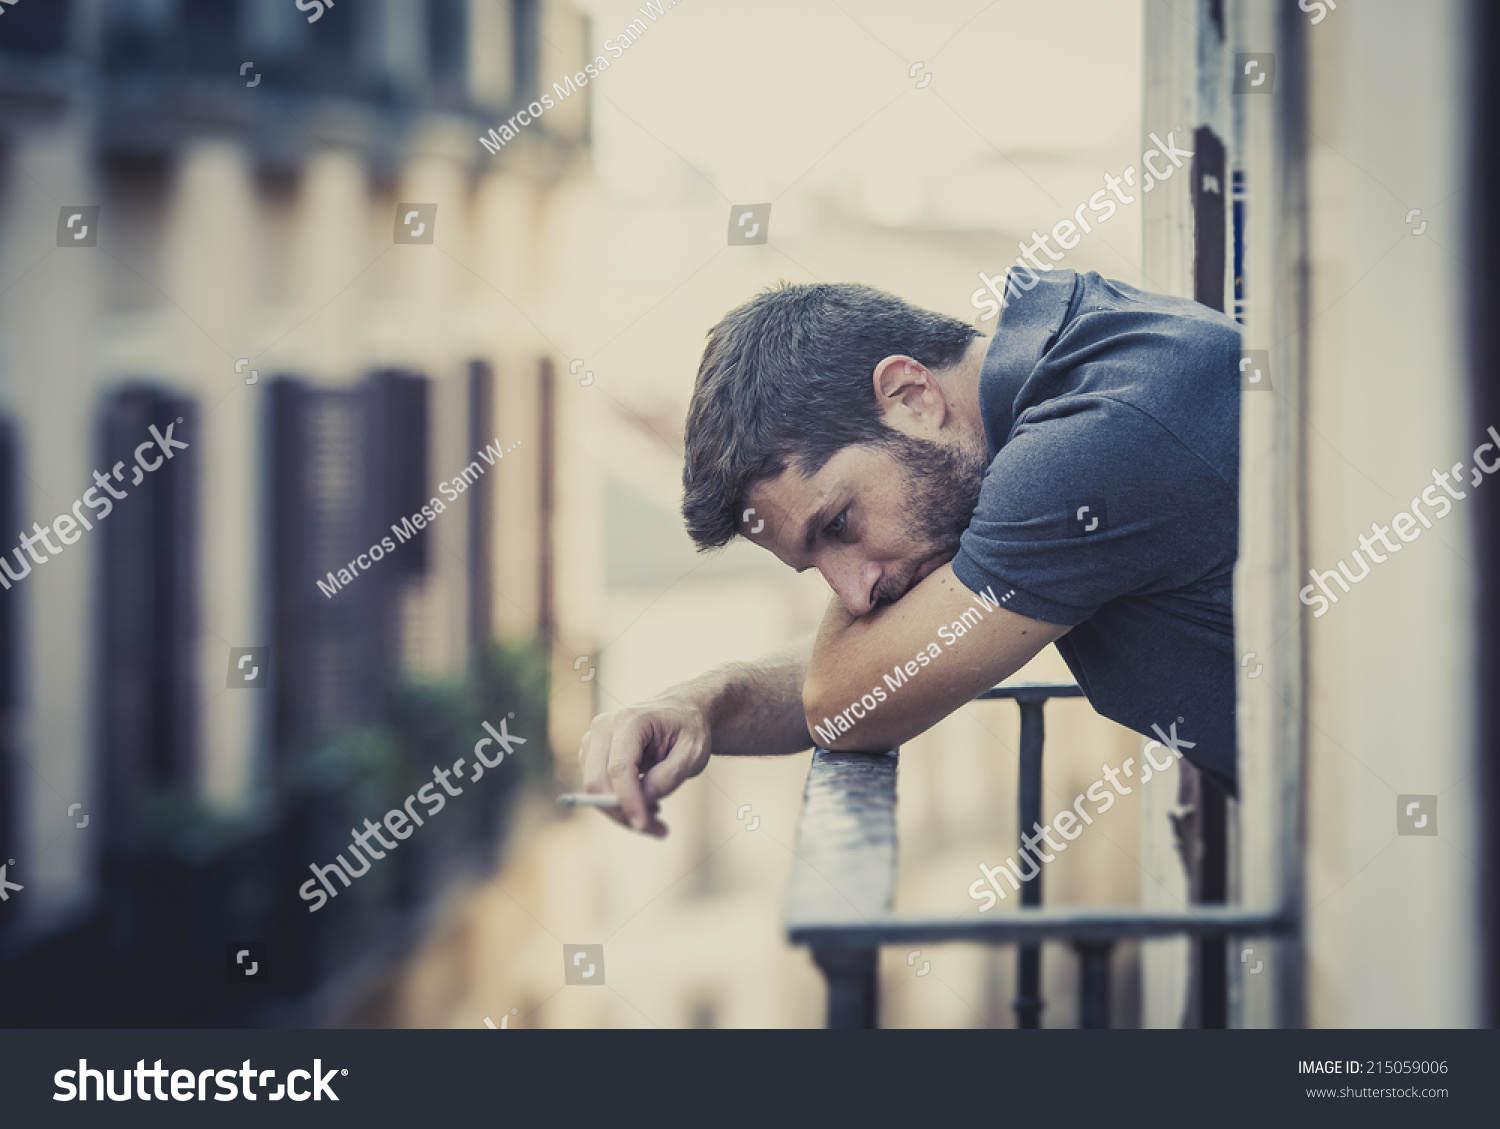 Young man alone outside at house balcony terrace smoking depressed destroyed wasted and sad